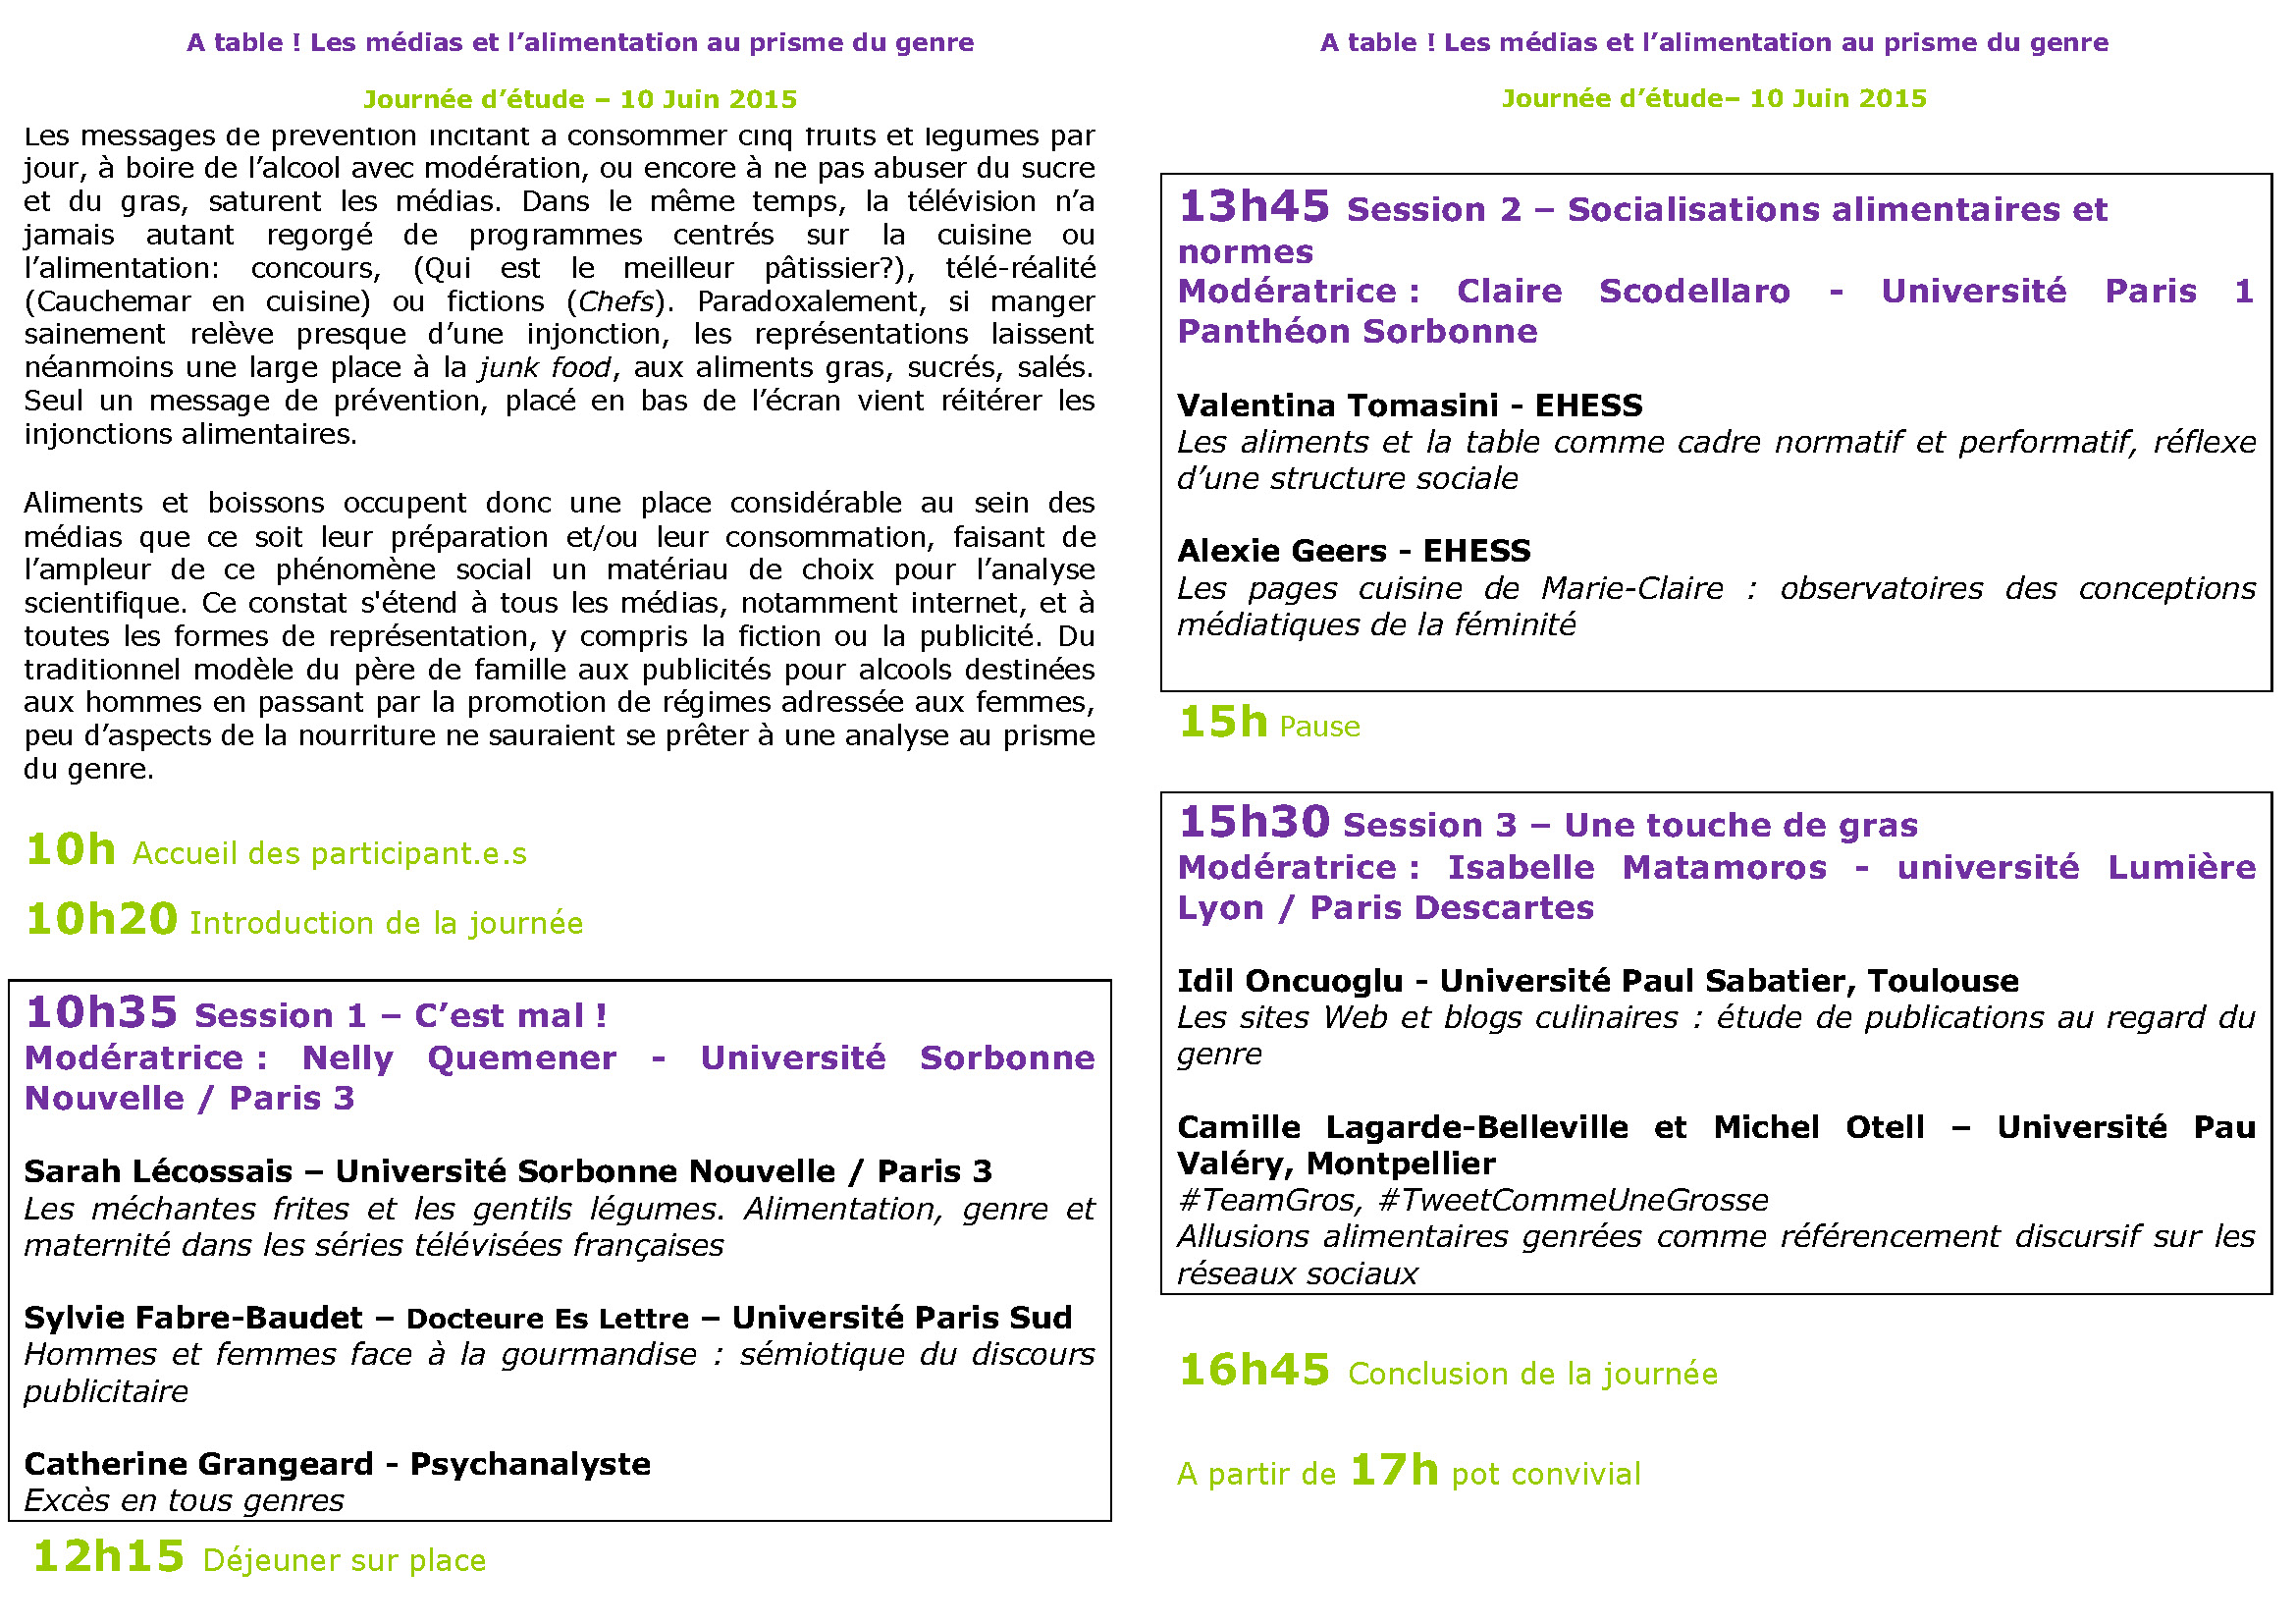 Programme_JE_genre_et_médias-2015-a-table Version Finale_Page_2